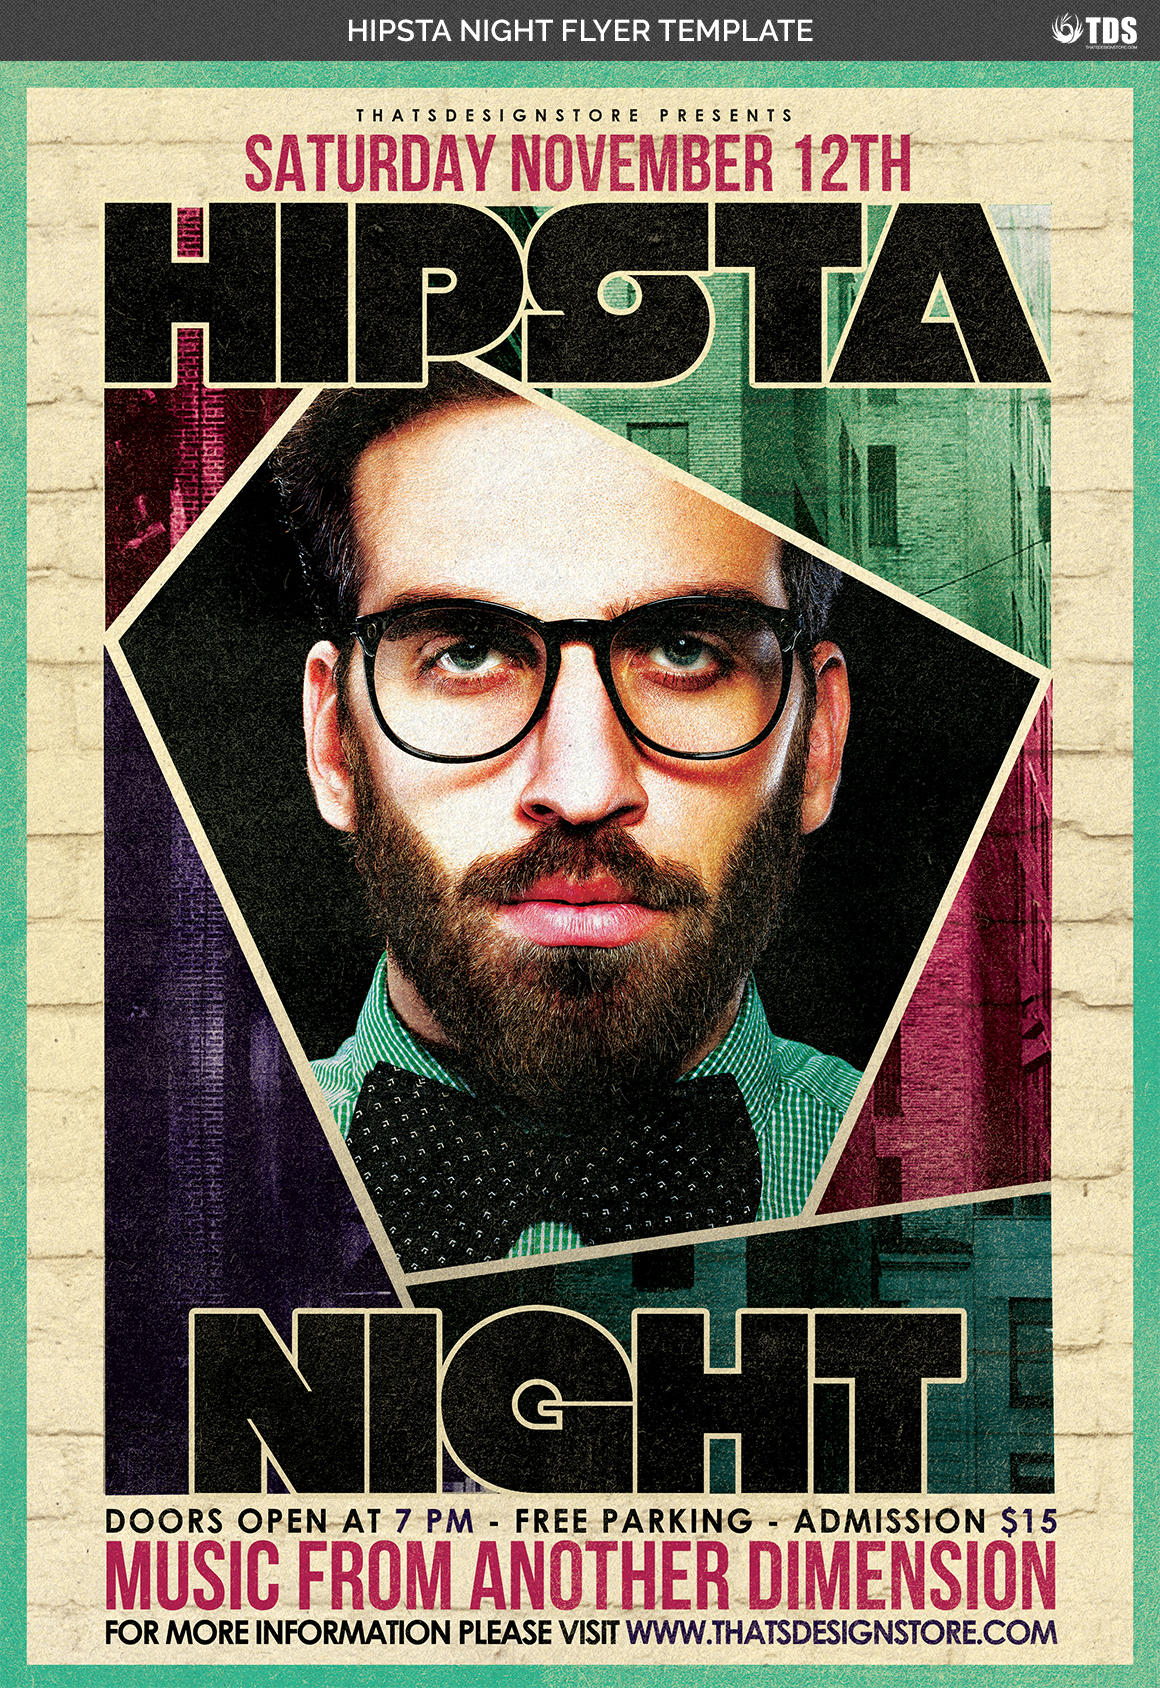 Hipsta Night Flyer Template example image 4